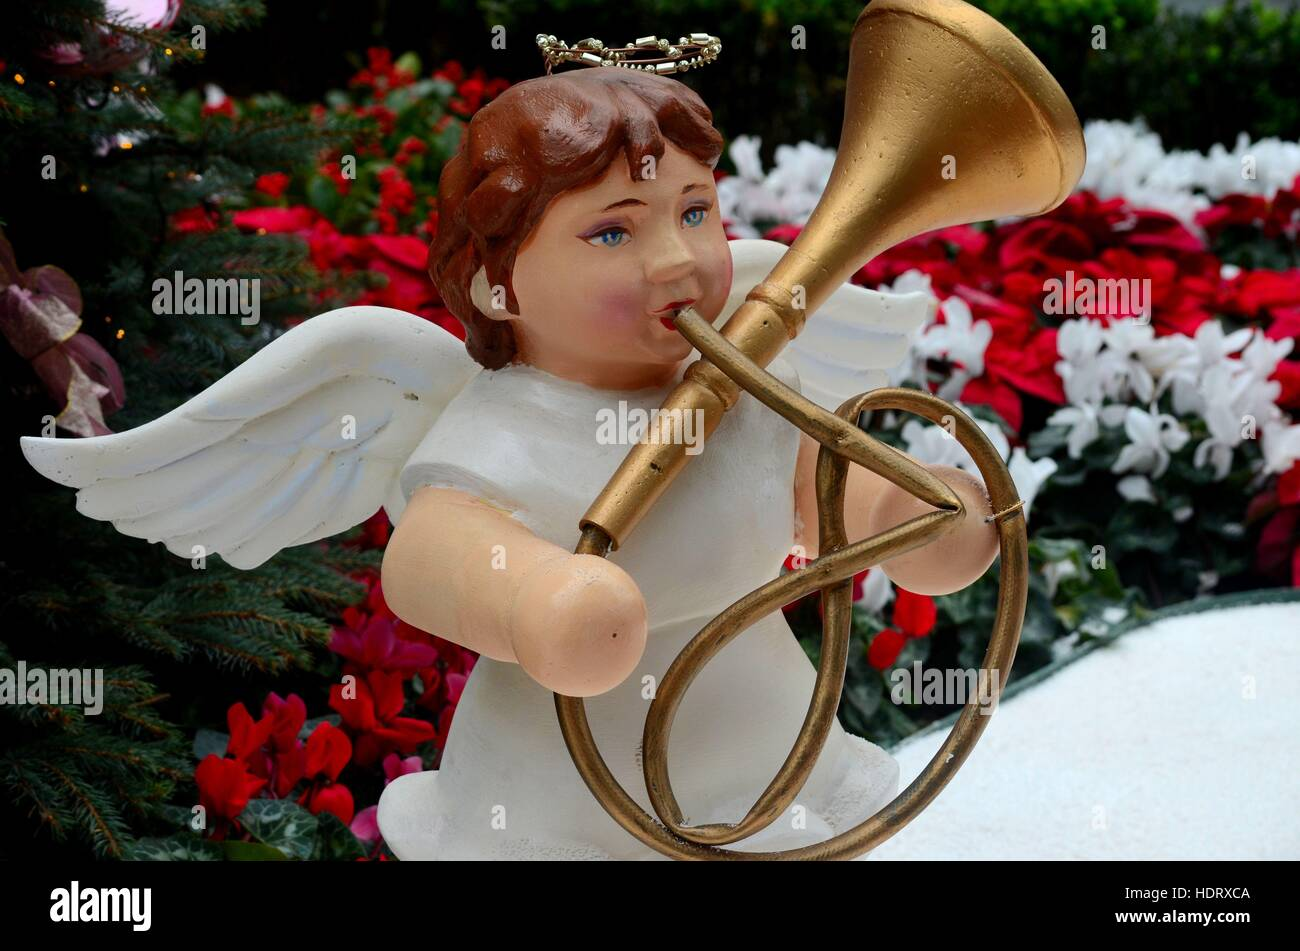 Christmas angel statue plays French horn trumpet brass music instrument - Stock Image